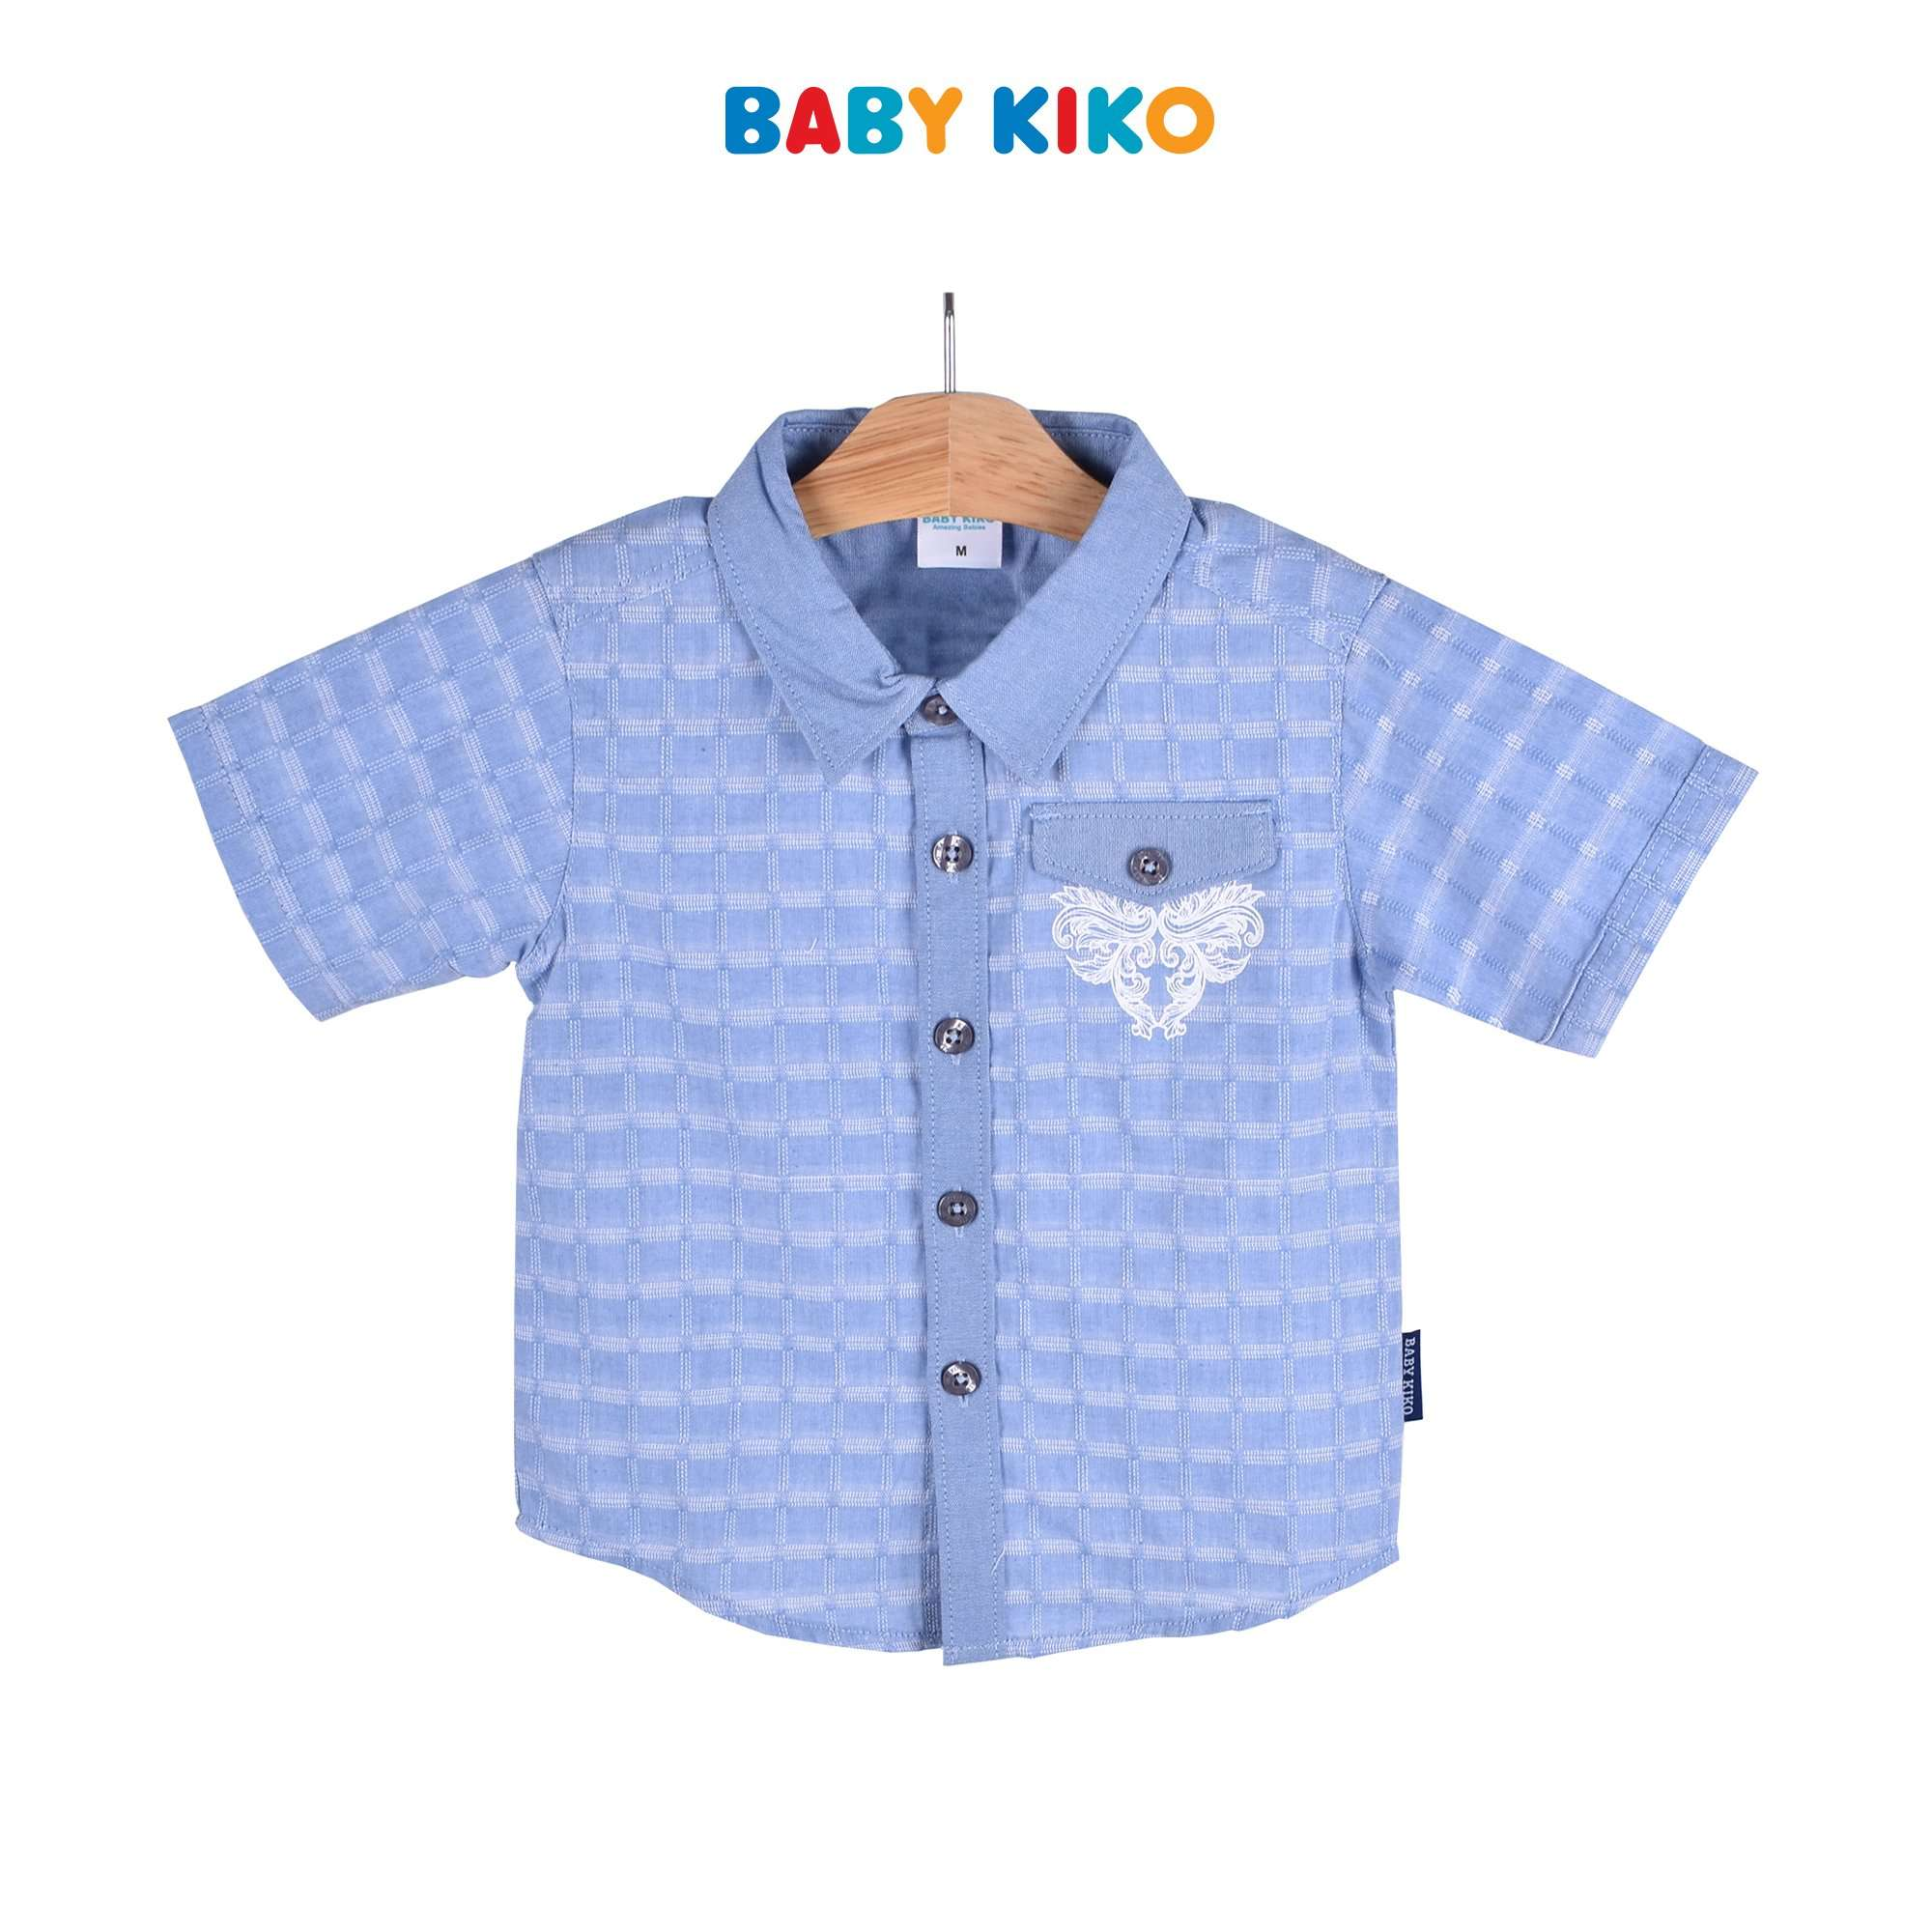 Baby KIKO Toddler Boy Short Sleeve Dress Woven - Navy 315122-141 : Buy Baby KIKO online at CMG.MY